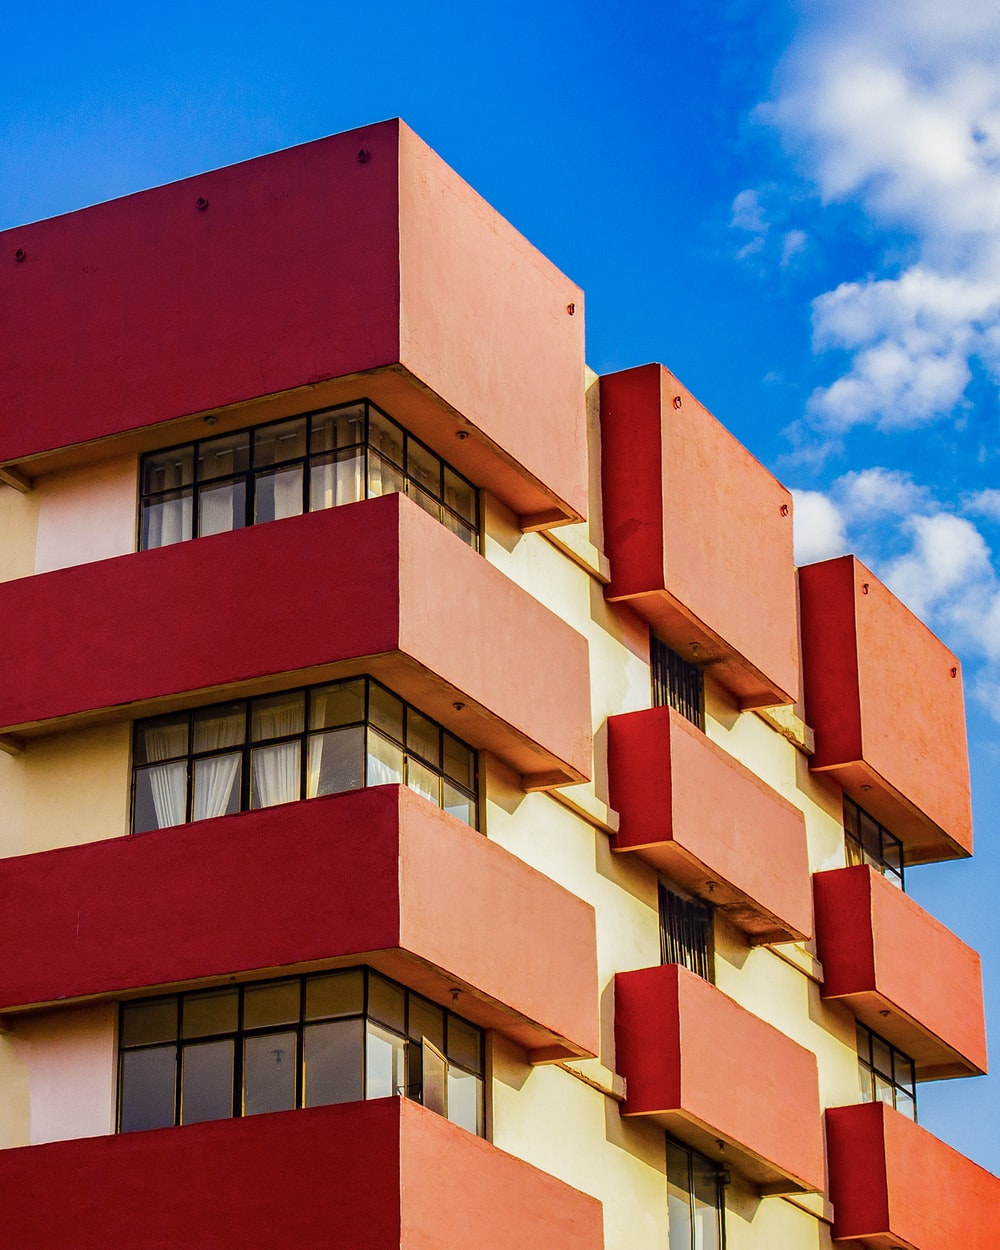 red and yellow concrete multi-storey building under blue sky